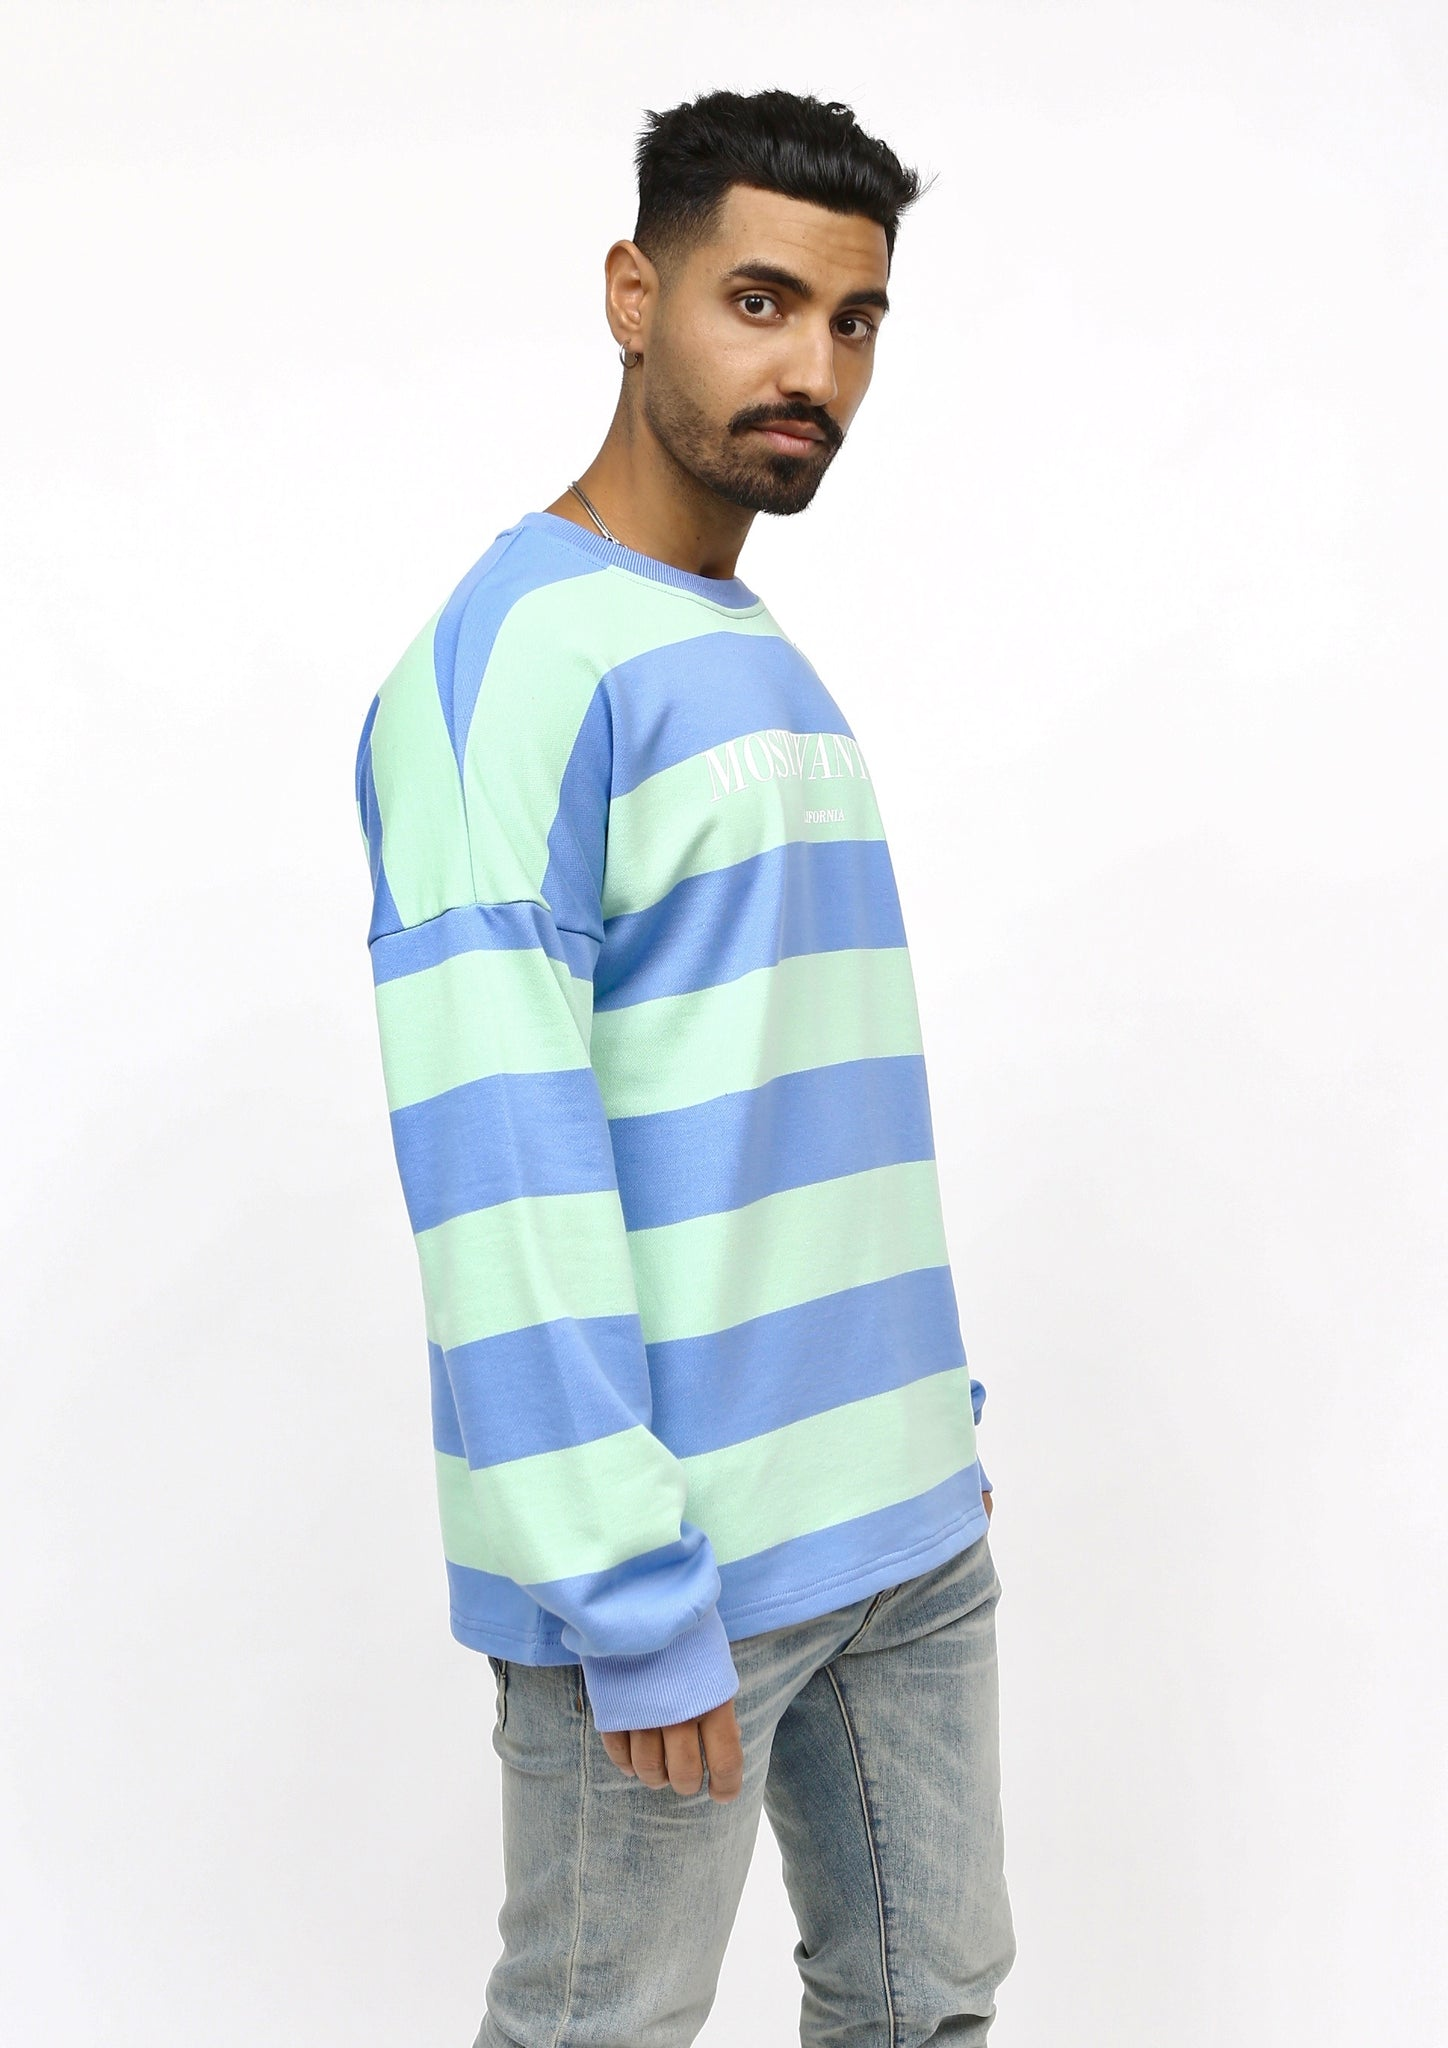 MOST WANTED Light Blue/Green Stripe Long Sleeve Crewneck T